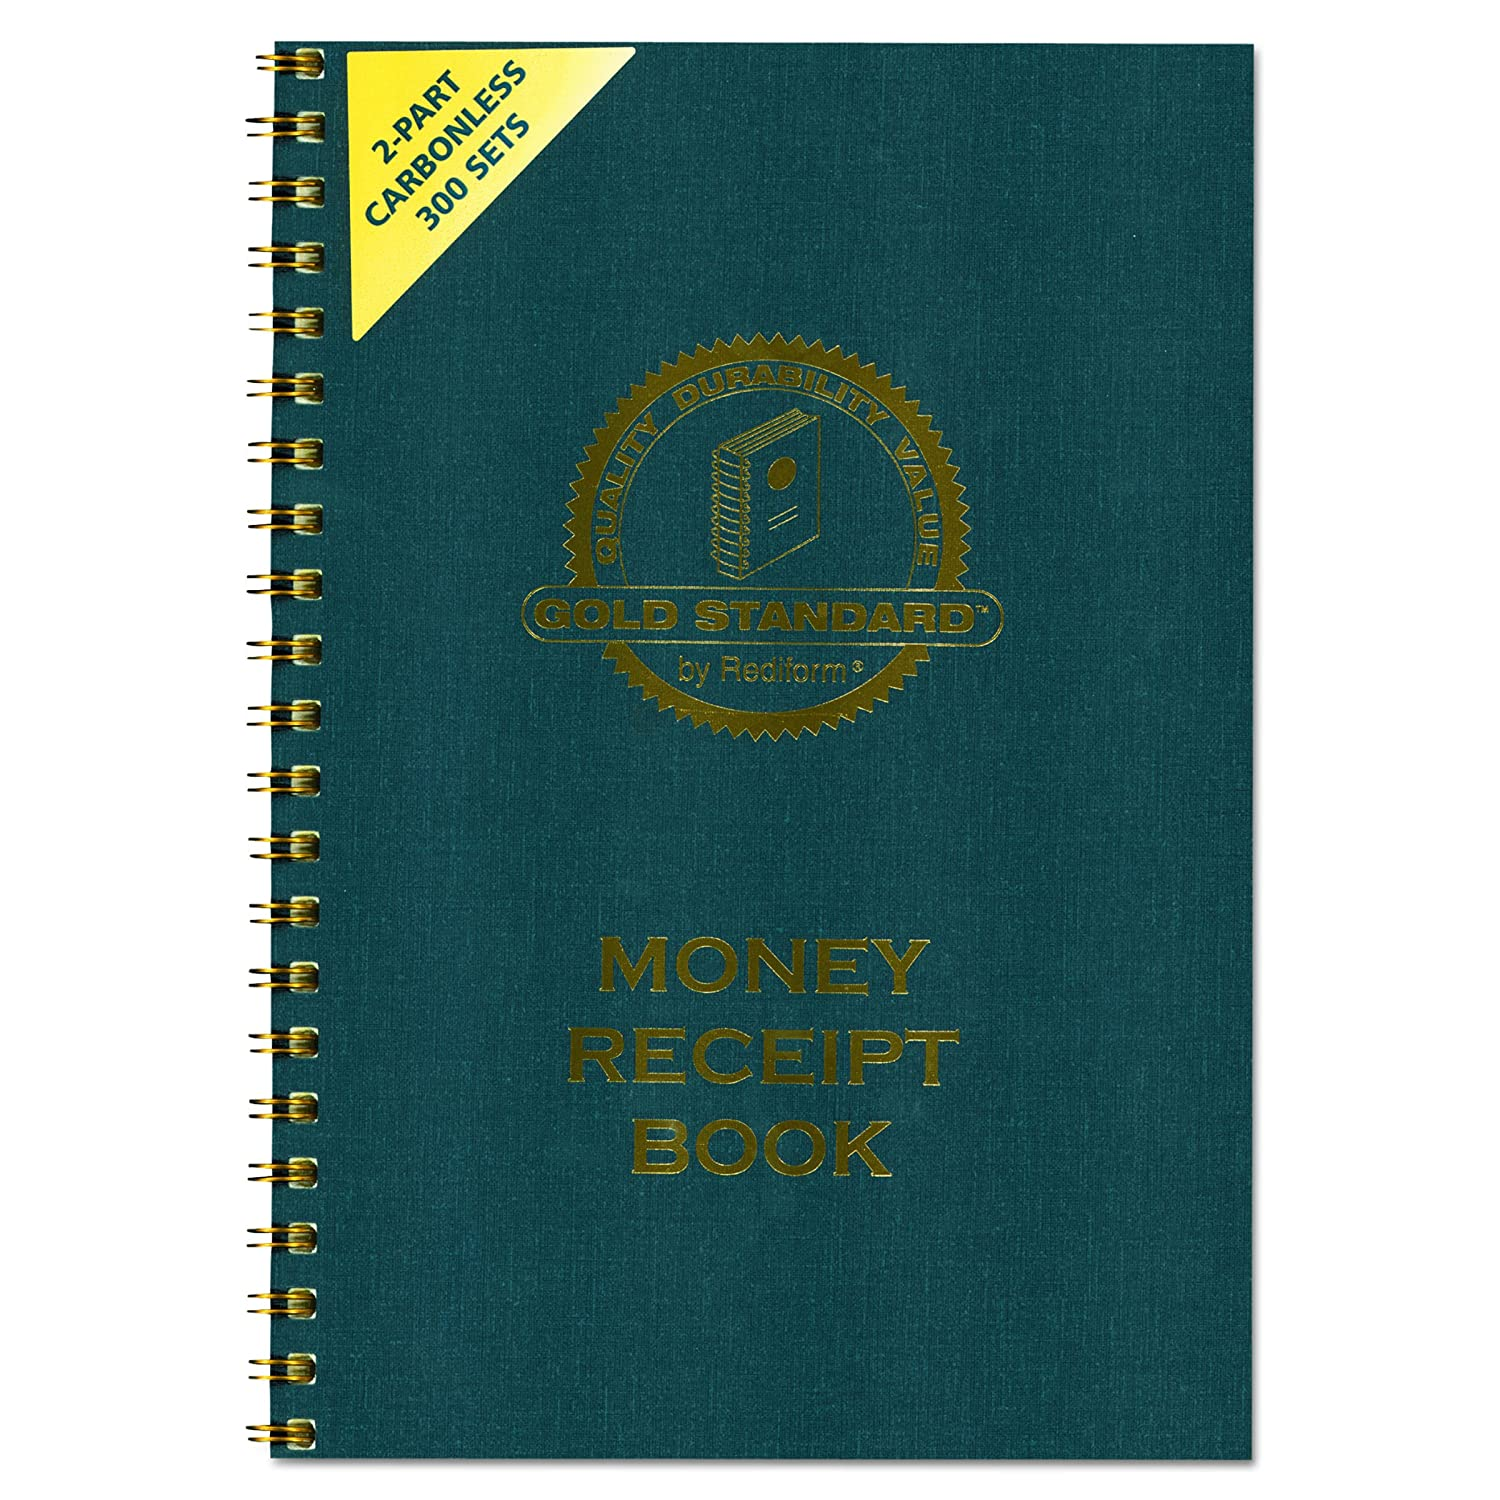 Money Receipt Book, 7 x 2 3/4, Carbonless Duplicate, Duplicate, Duplicate, Twin Wire, 300 Sets/Book 9a7e70